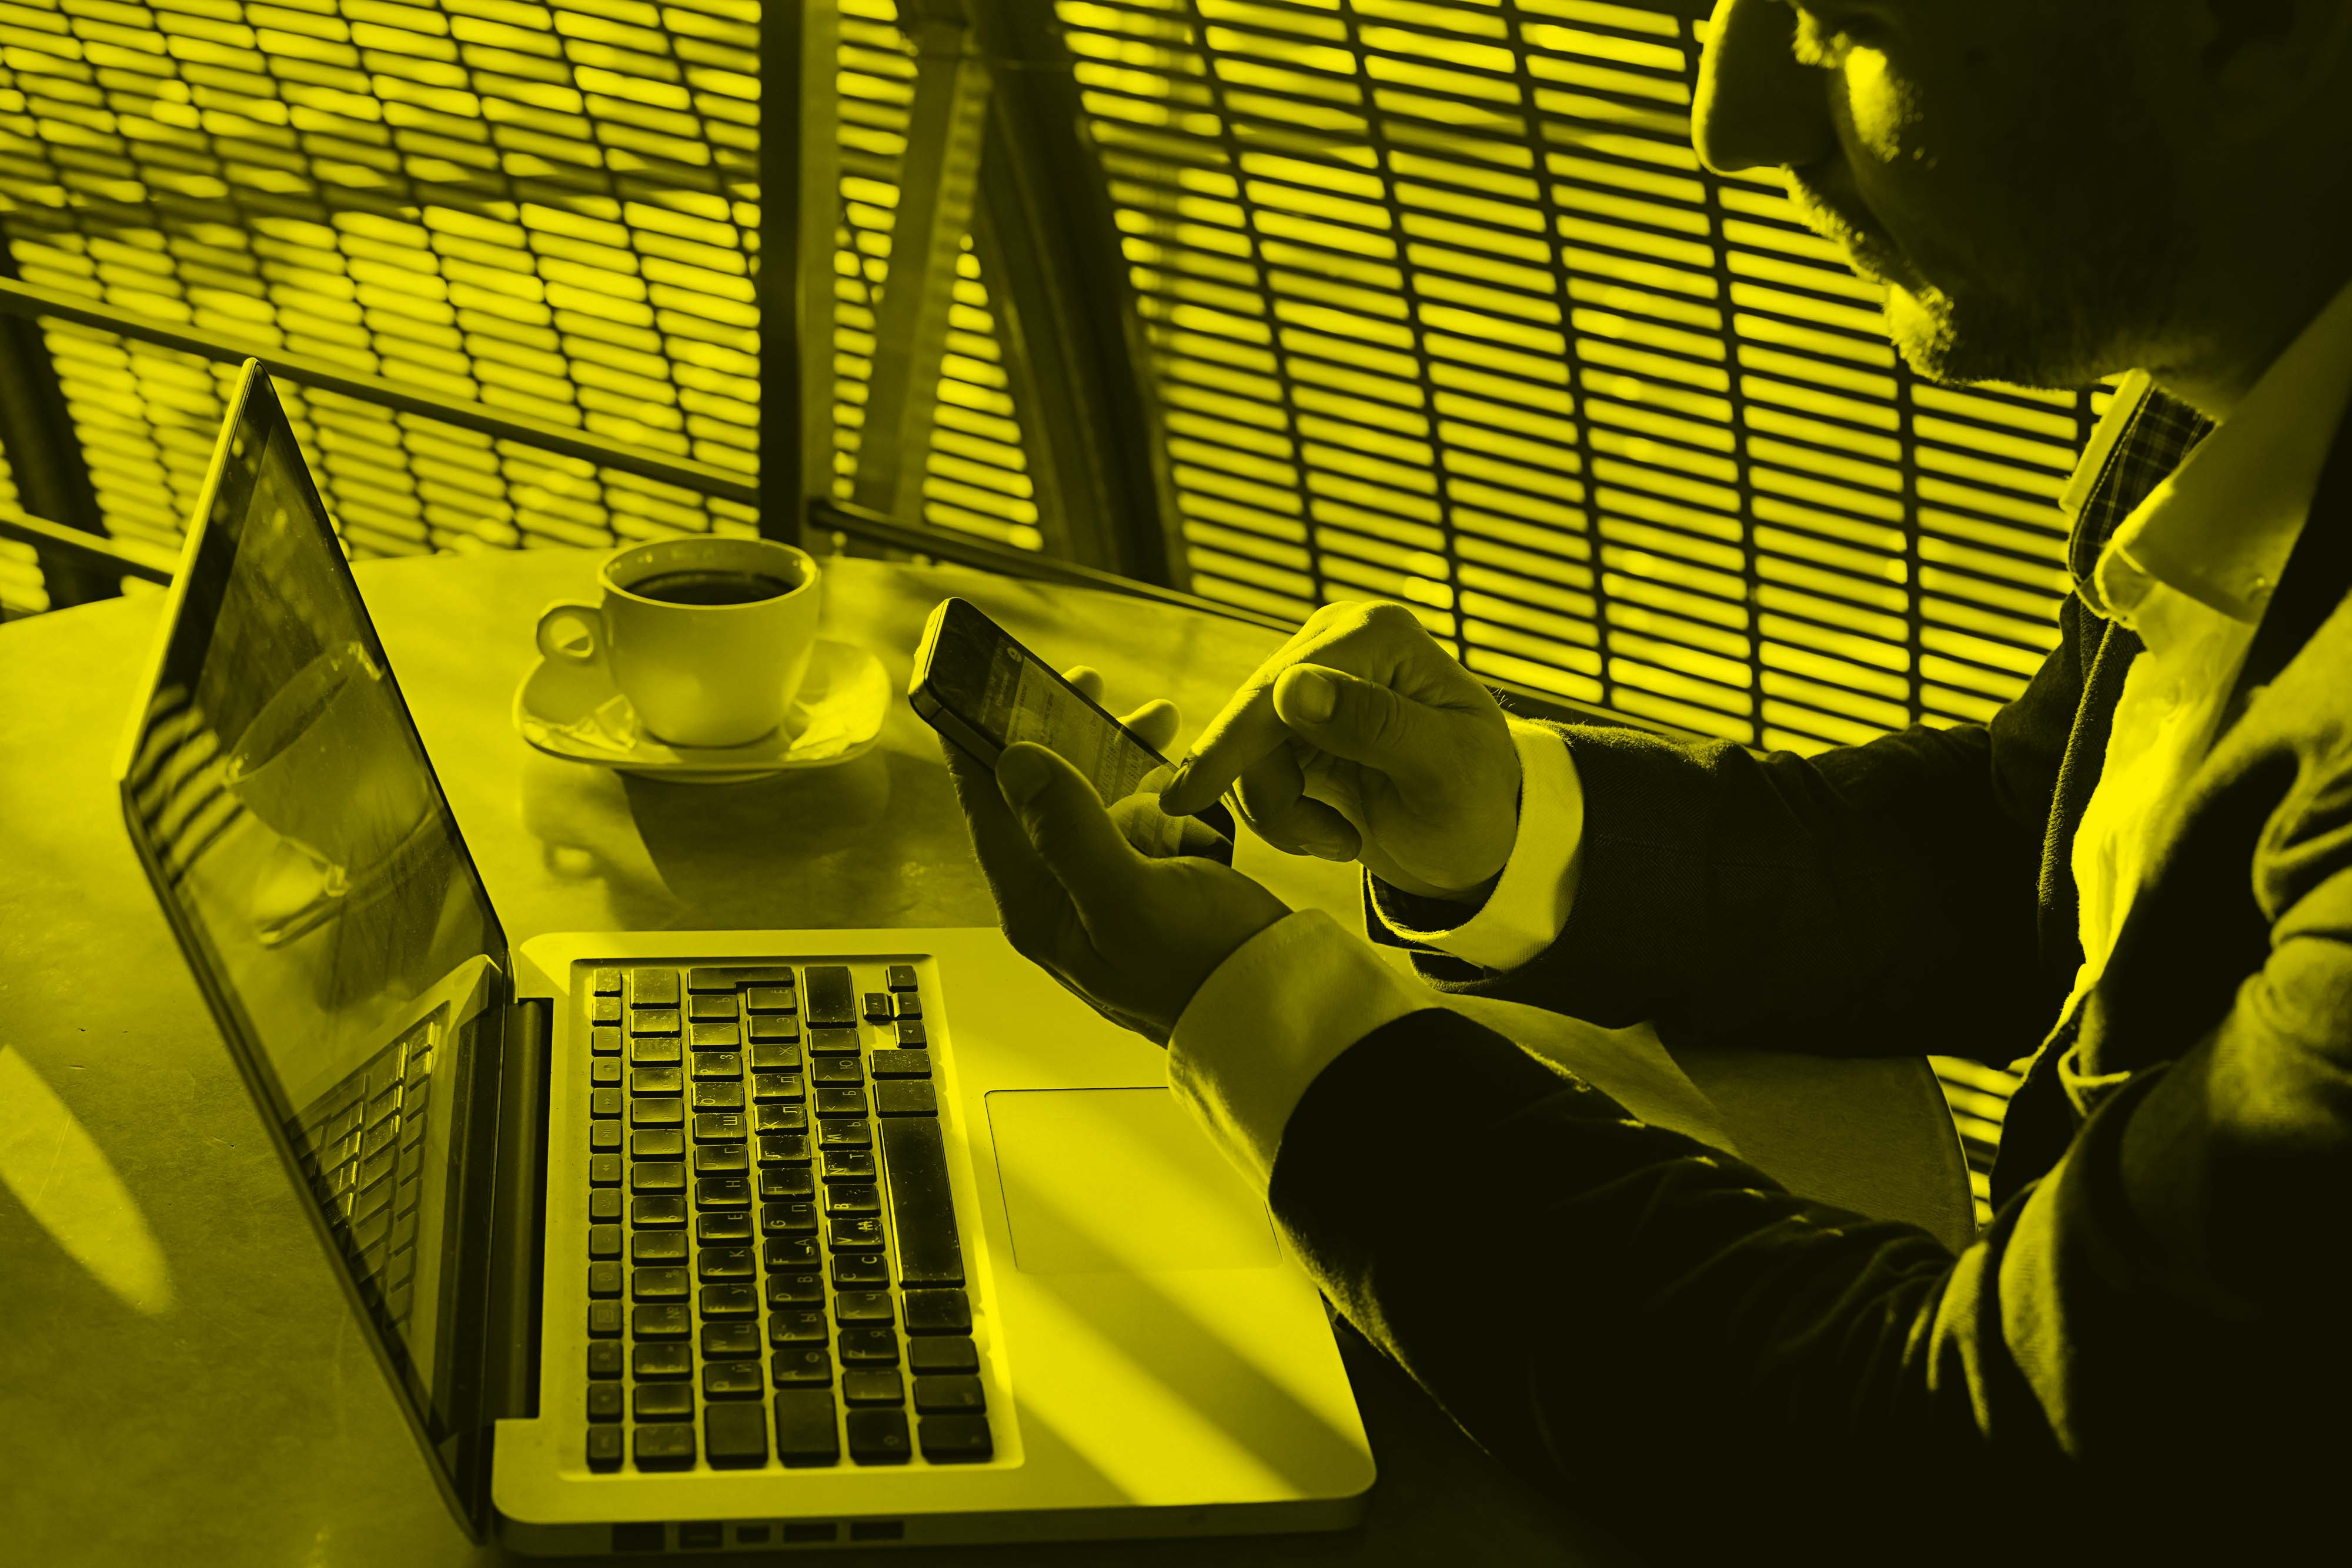 Man_Coffee_Laptop_Cell_yellow.jpg